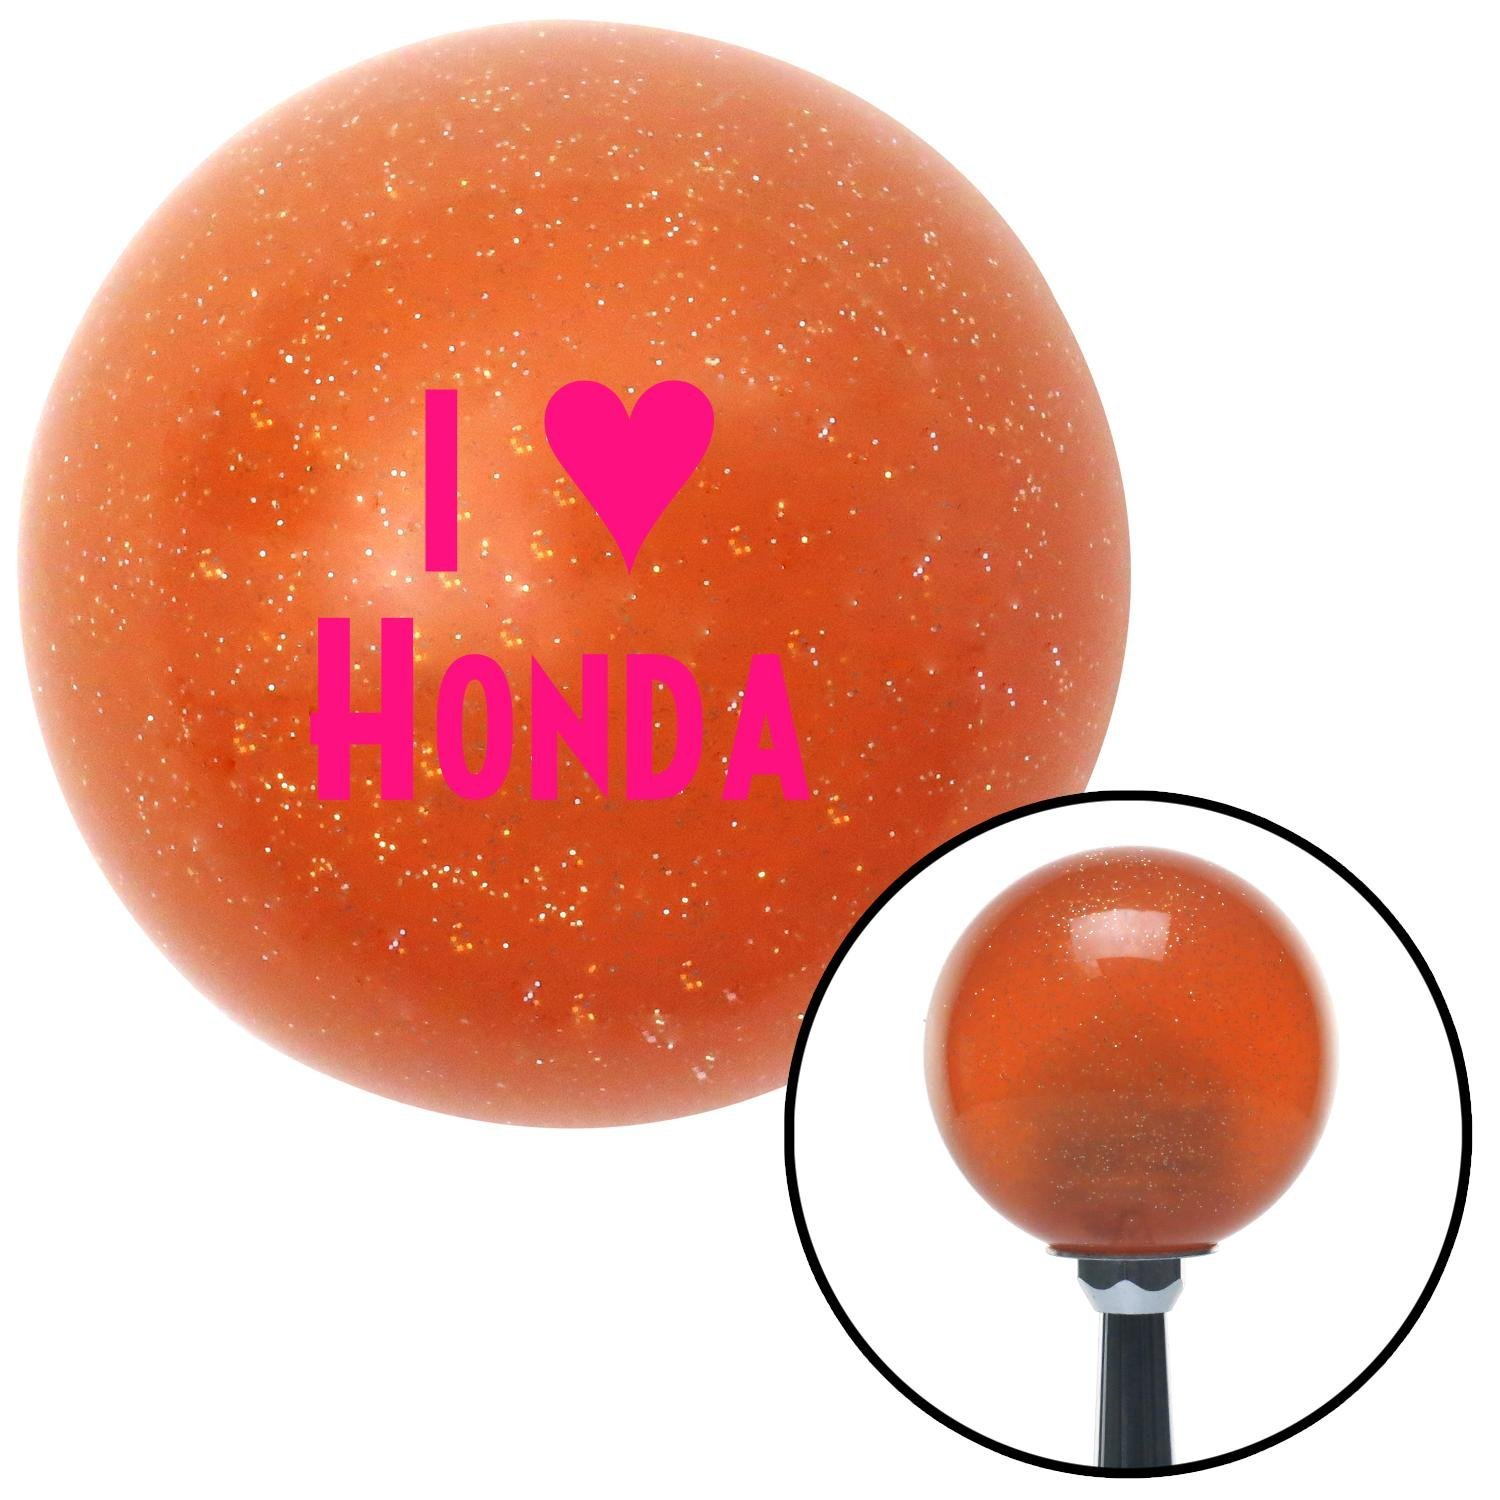 American Shifter 37879 Orange Metal Flake Shift Knob with 16mm x 1.5mm Insert Pink I 3 Honda